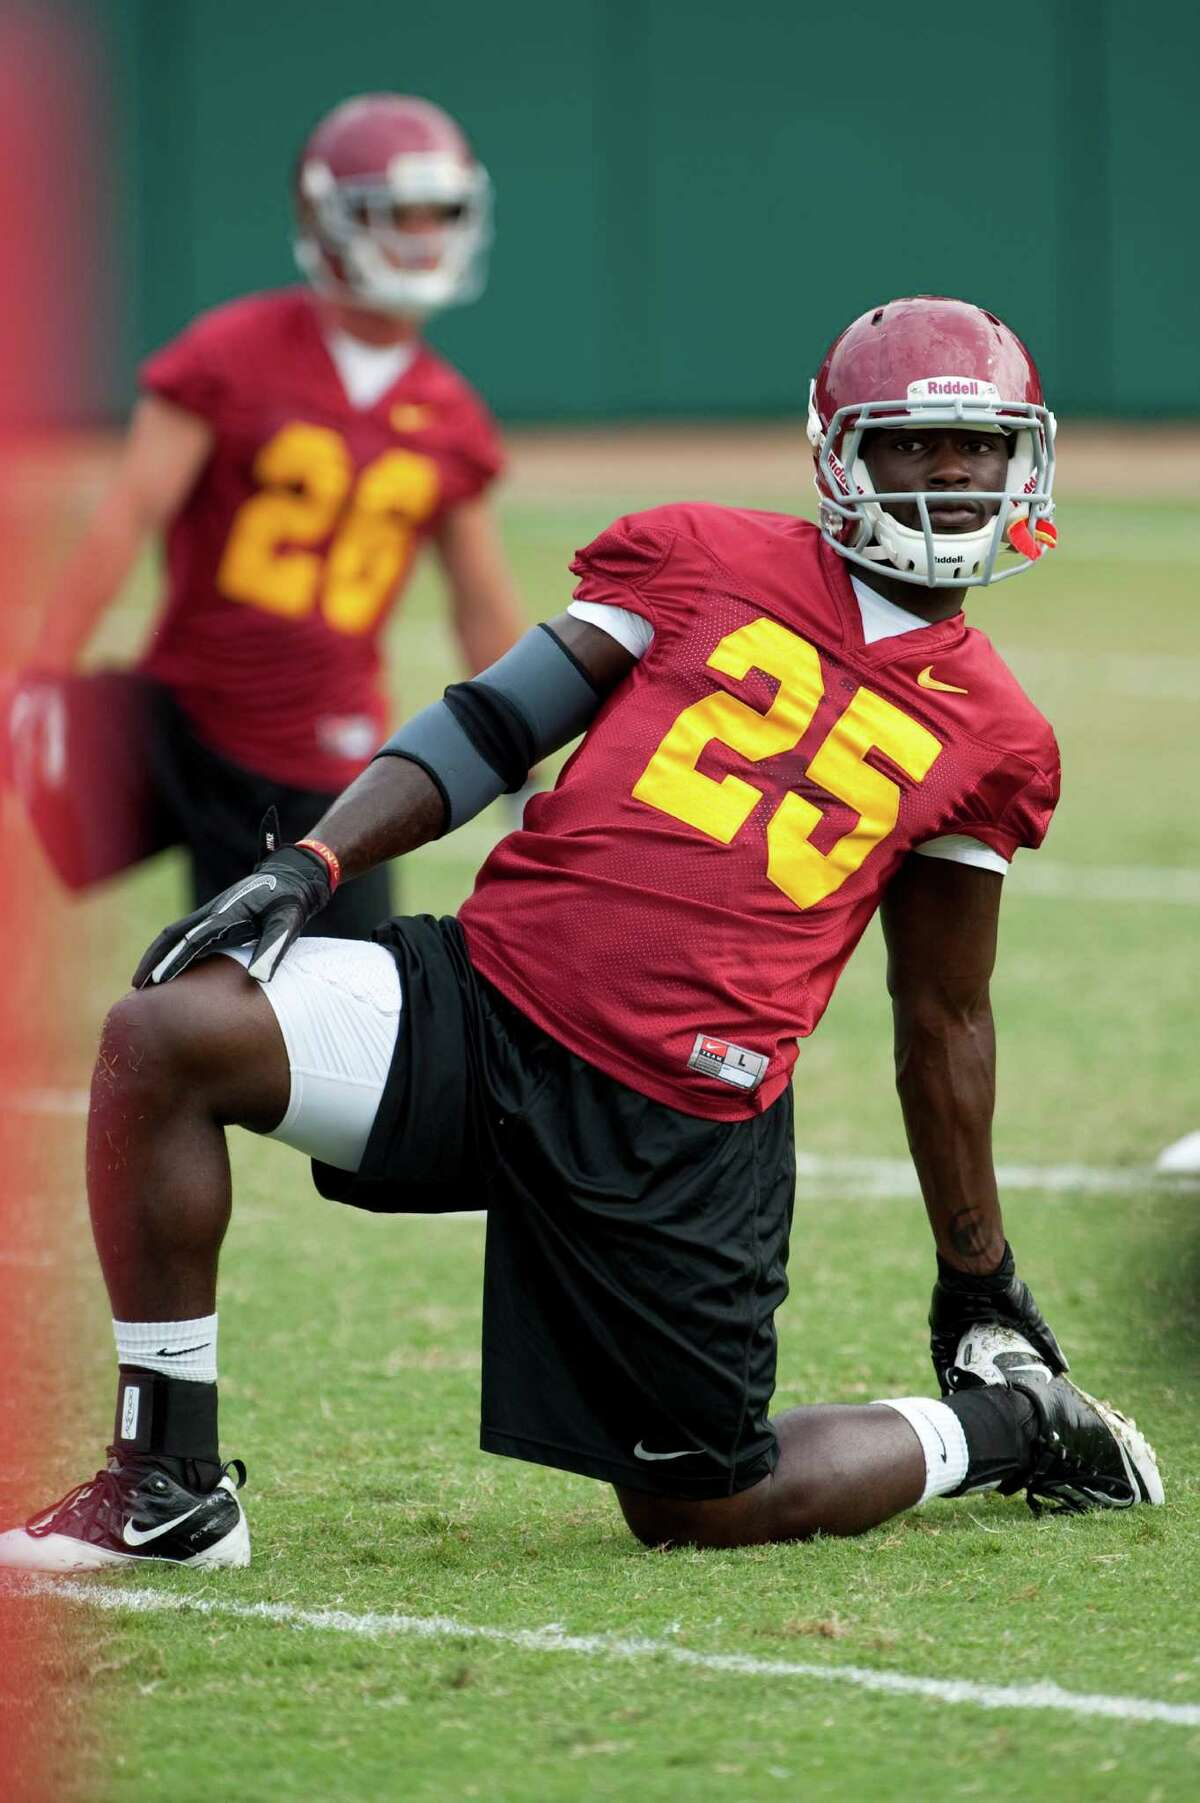 Southern California running back Silas Redd stretches during NCAA college football practice in Los Angeles, Friday, Aug. 17, 2012. (AP Photo/Grant Hindsley)